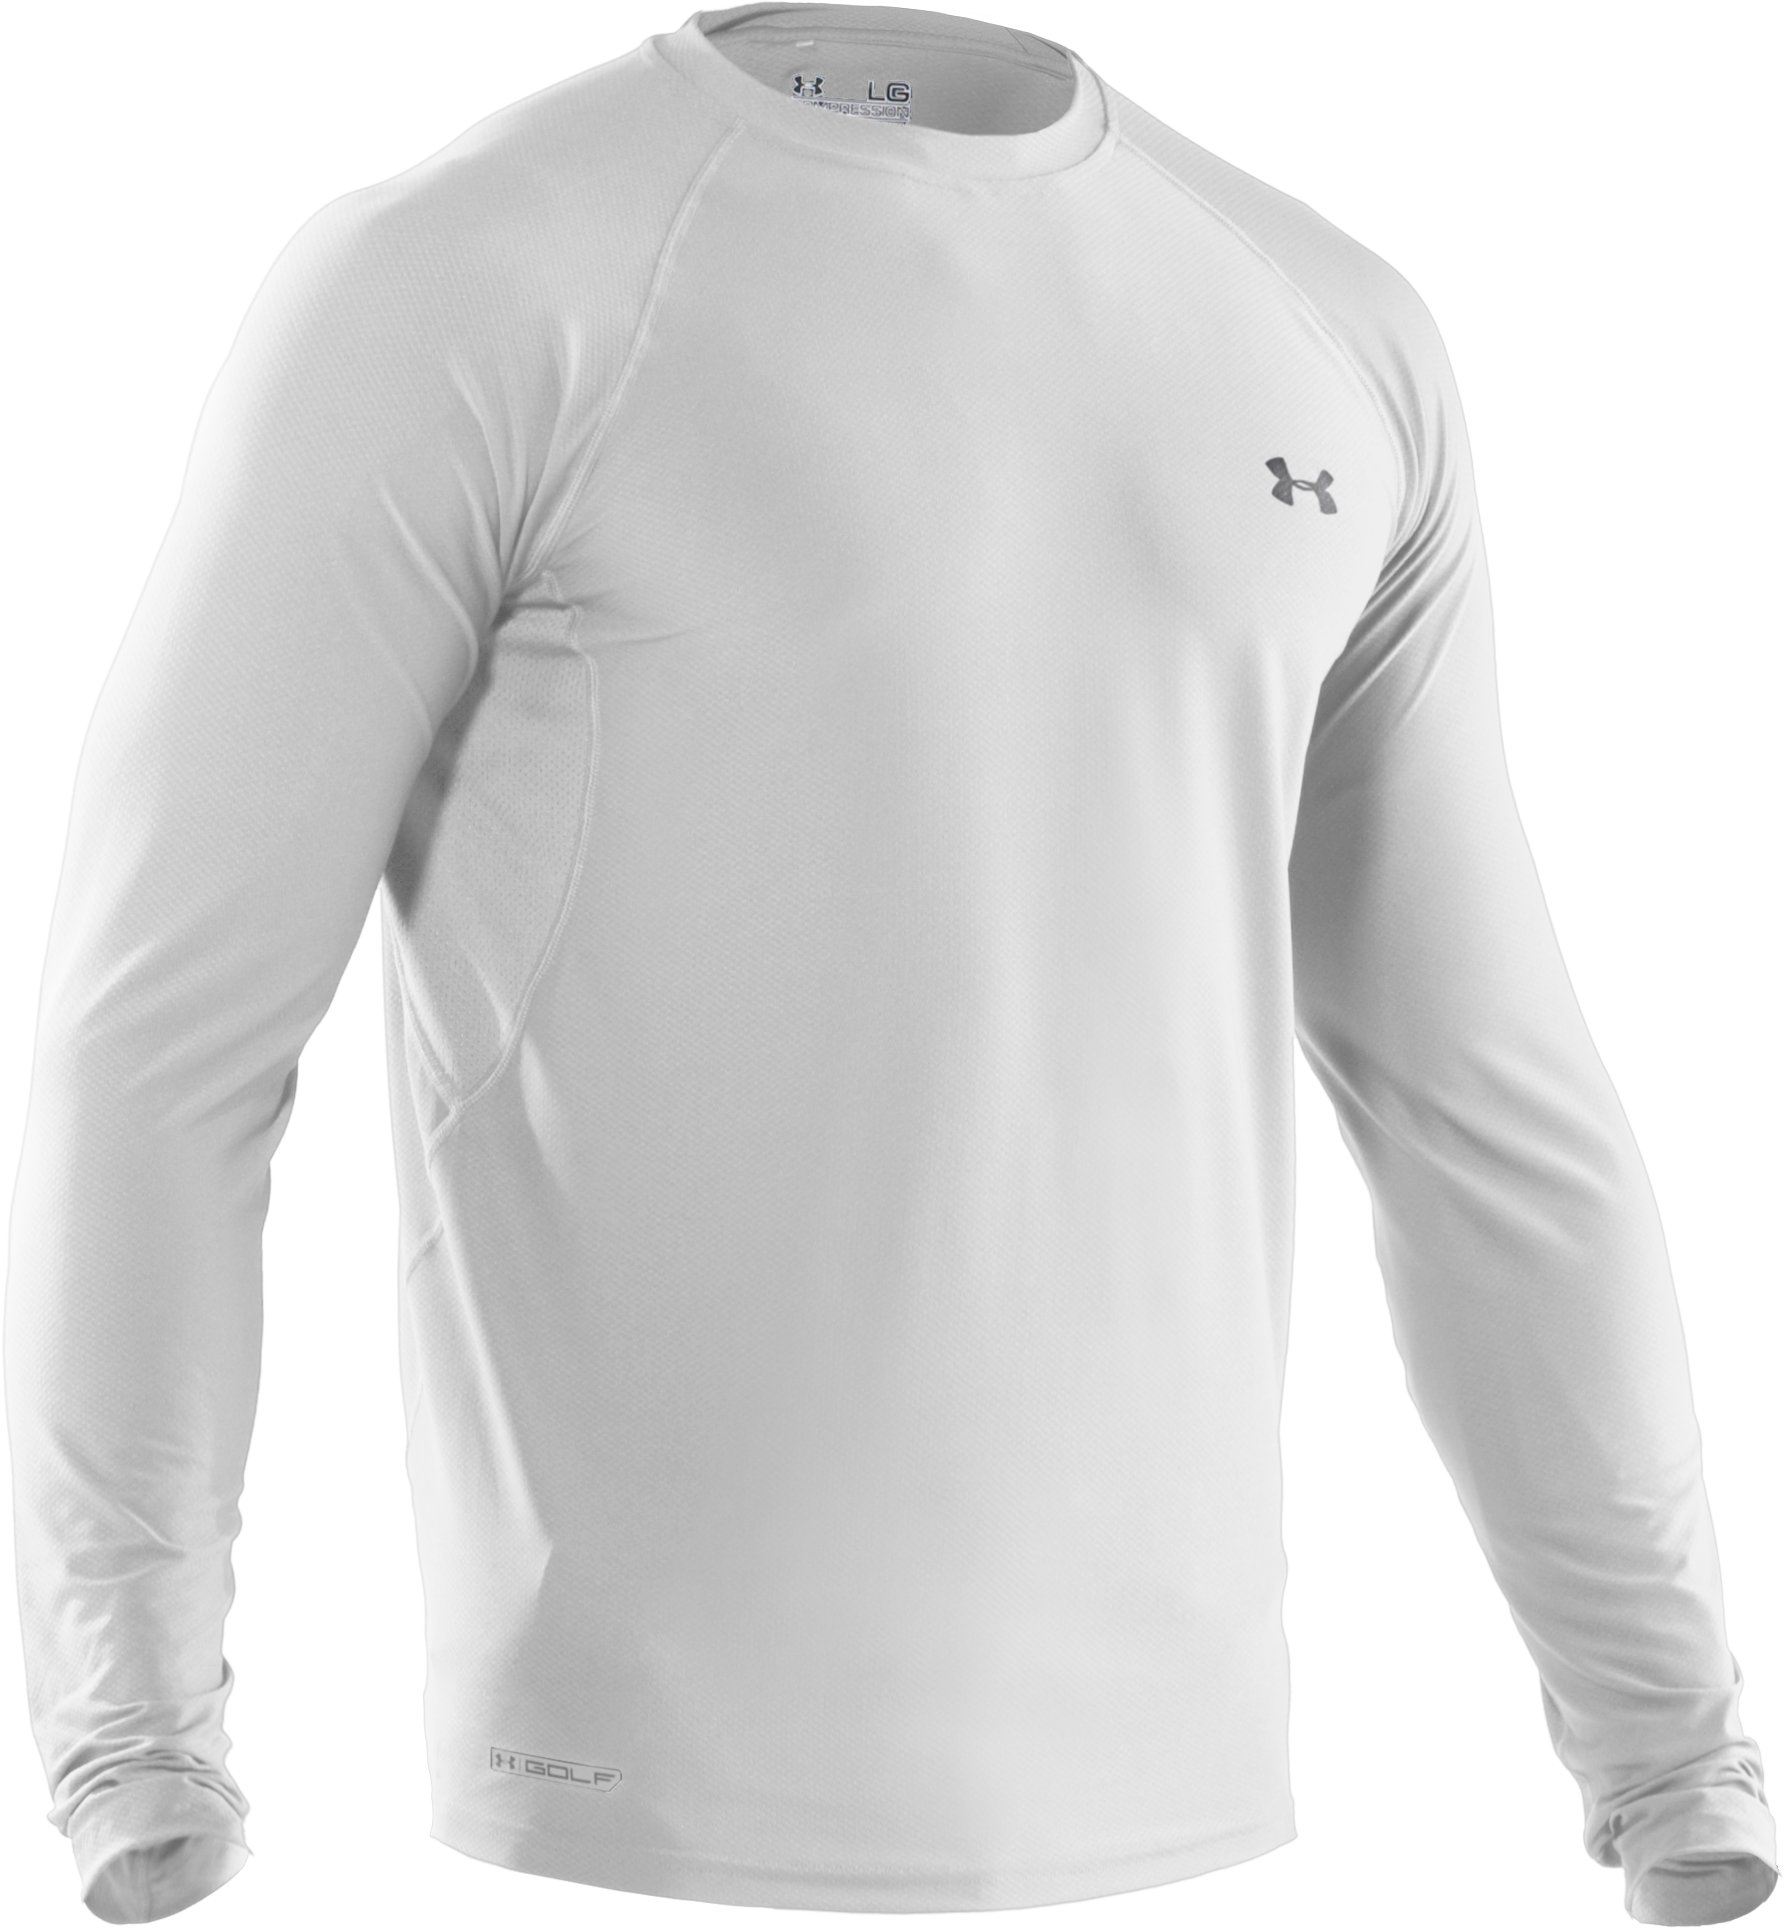 Men's HeatGear® Fitted Long Sleeve Layering Golf Shirt, White, undefined